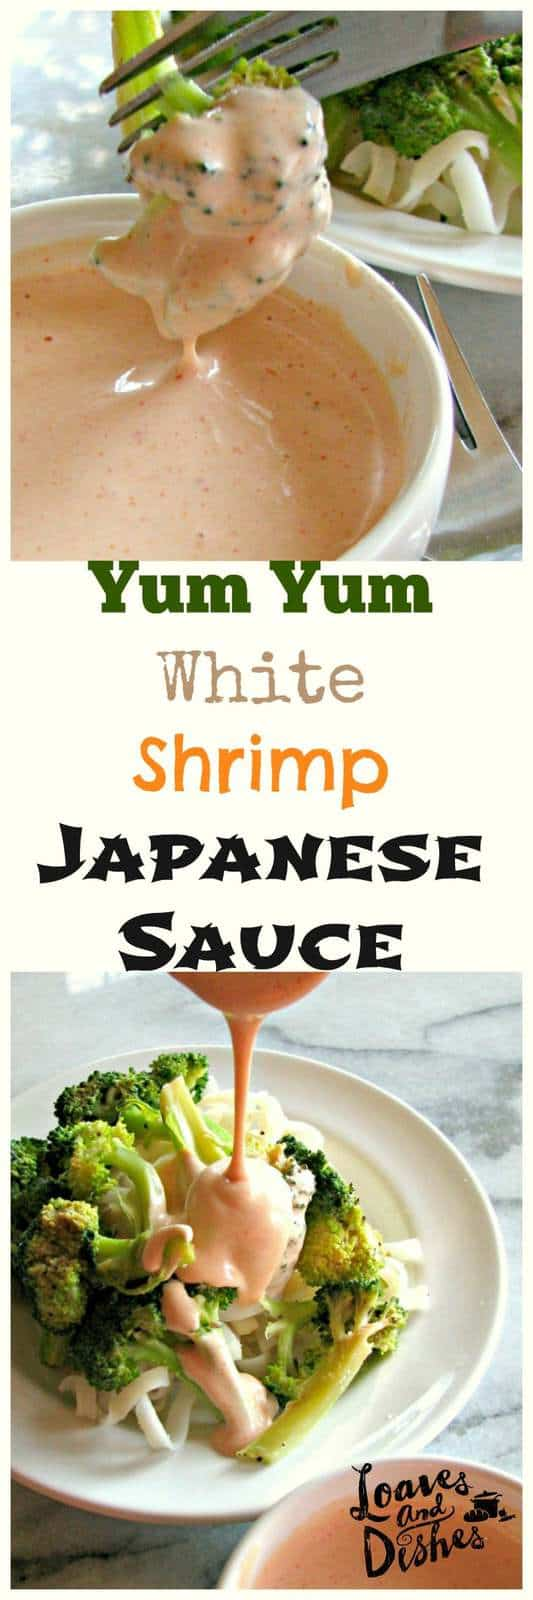 This is an easy recipe for how to make Shrimp Sauce Yum Yum Sauce for your healthy chicken meals or any Japanese meals or any low carb meals at all! Works for Keto too.  Not a copycat recipe, it is the original!